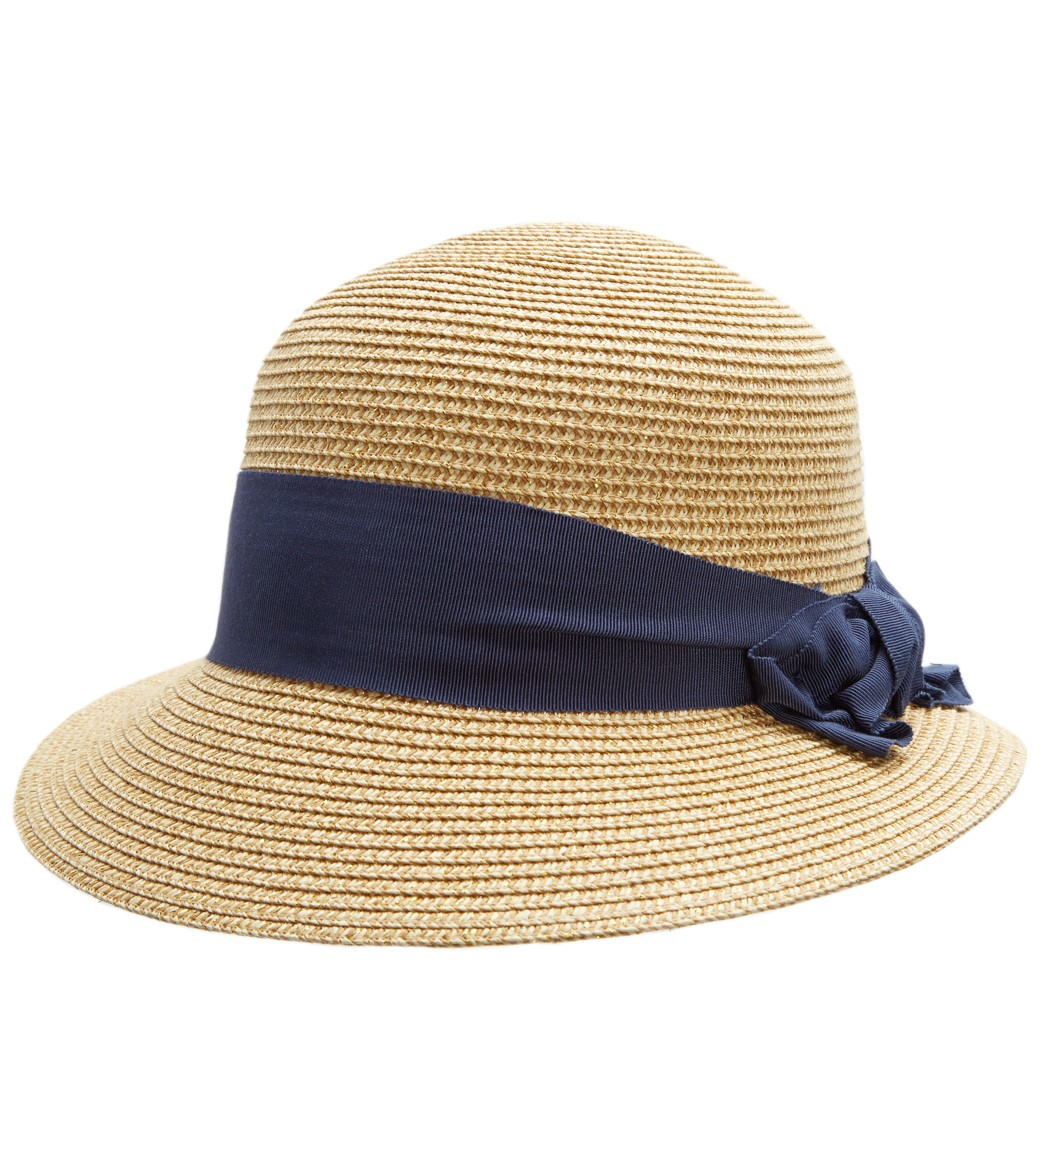 26dd955475ec4 Physician Endorsed Women's Spectator Straw Hat at SwimOutlet.com